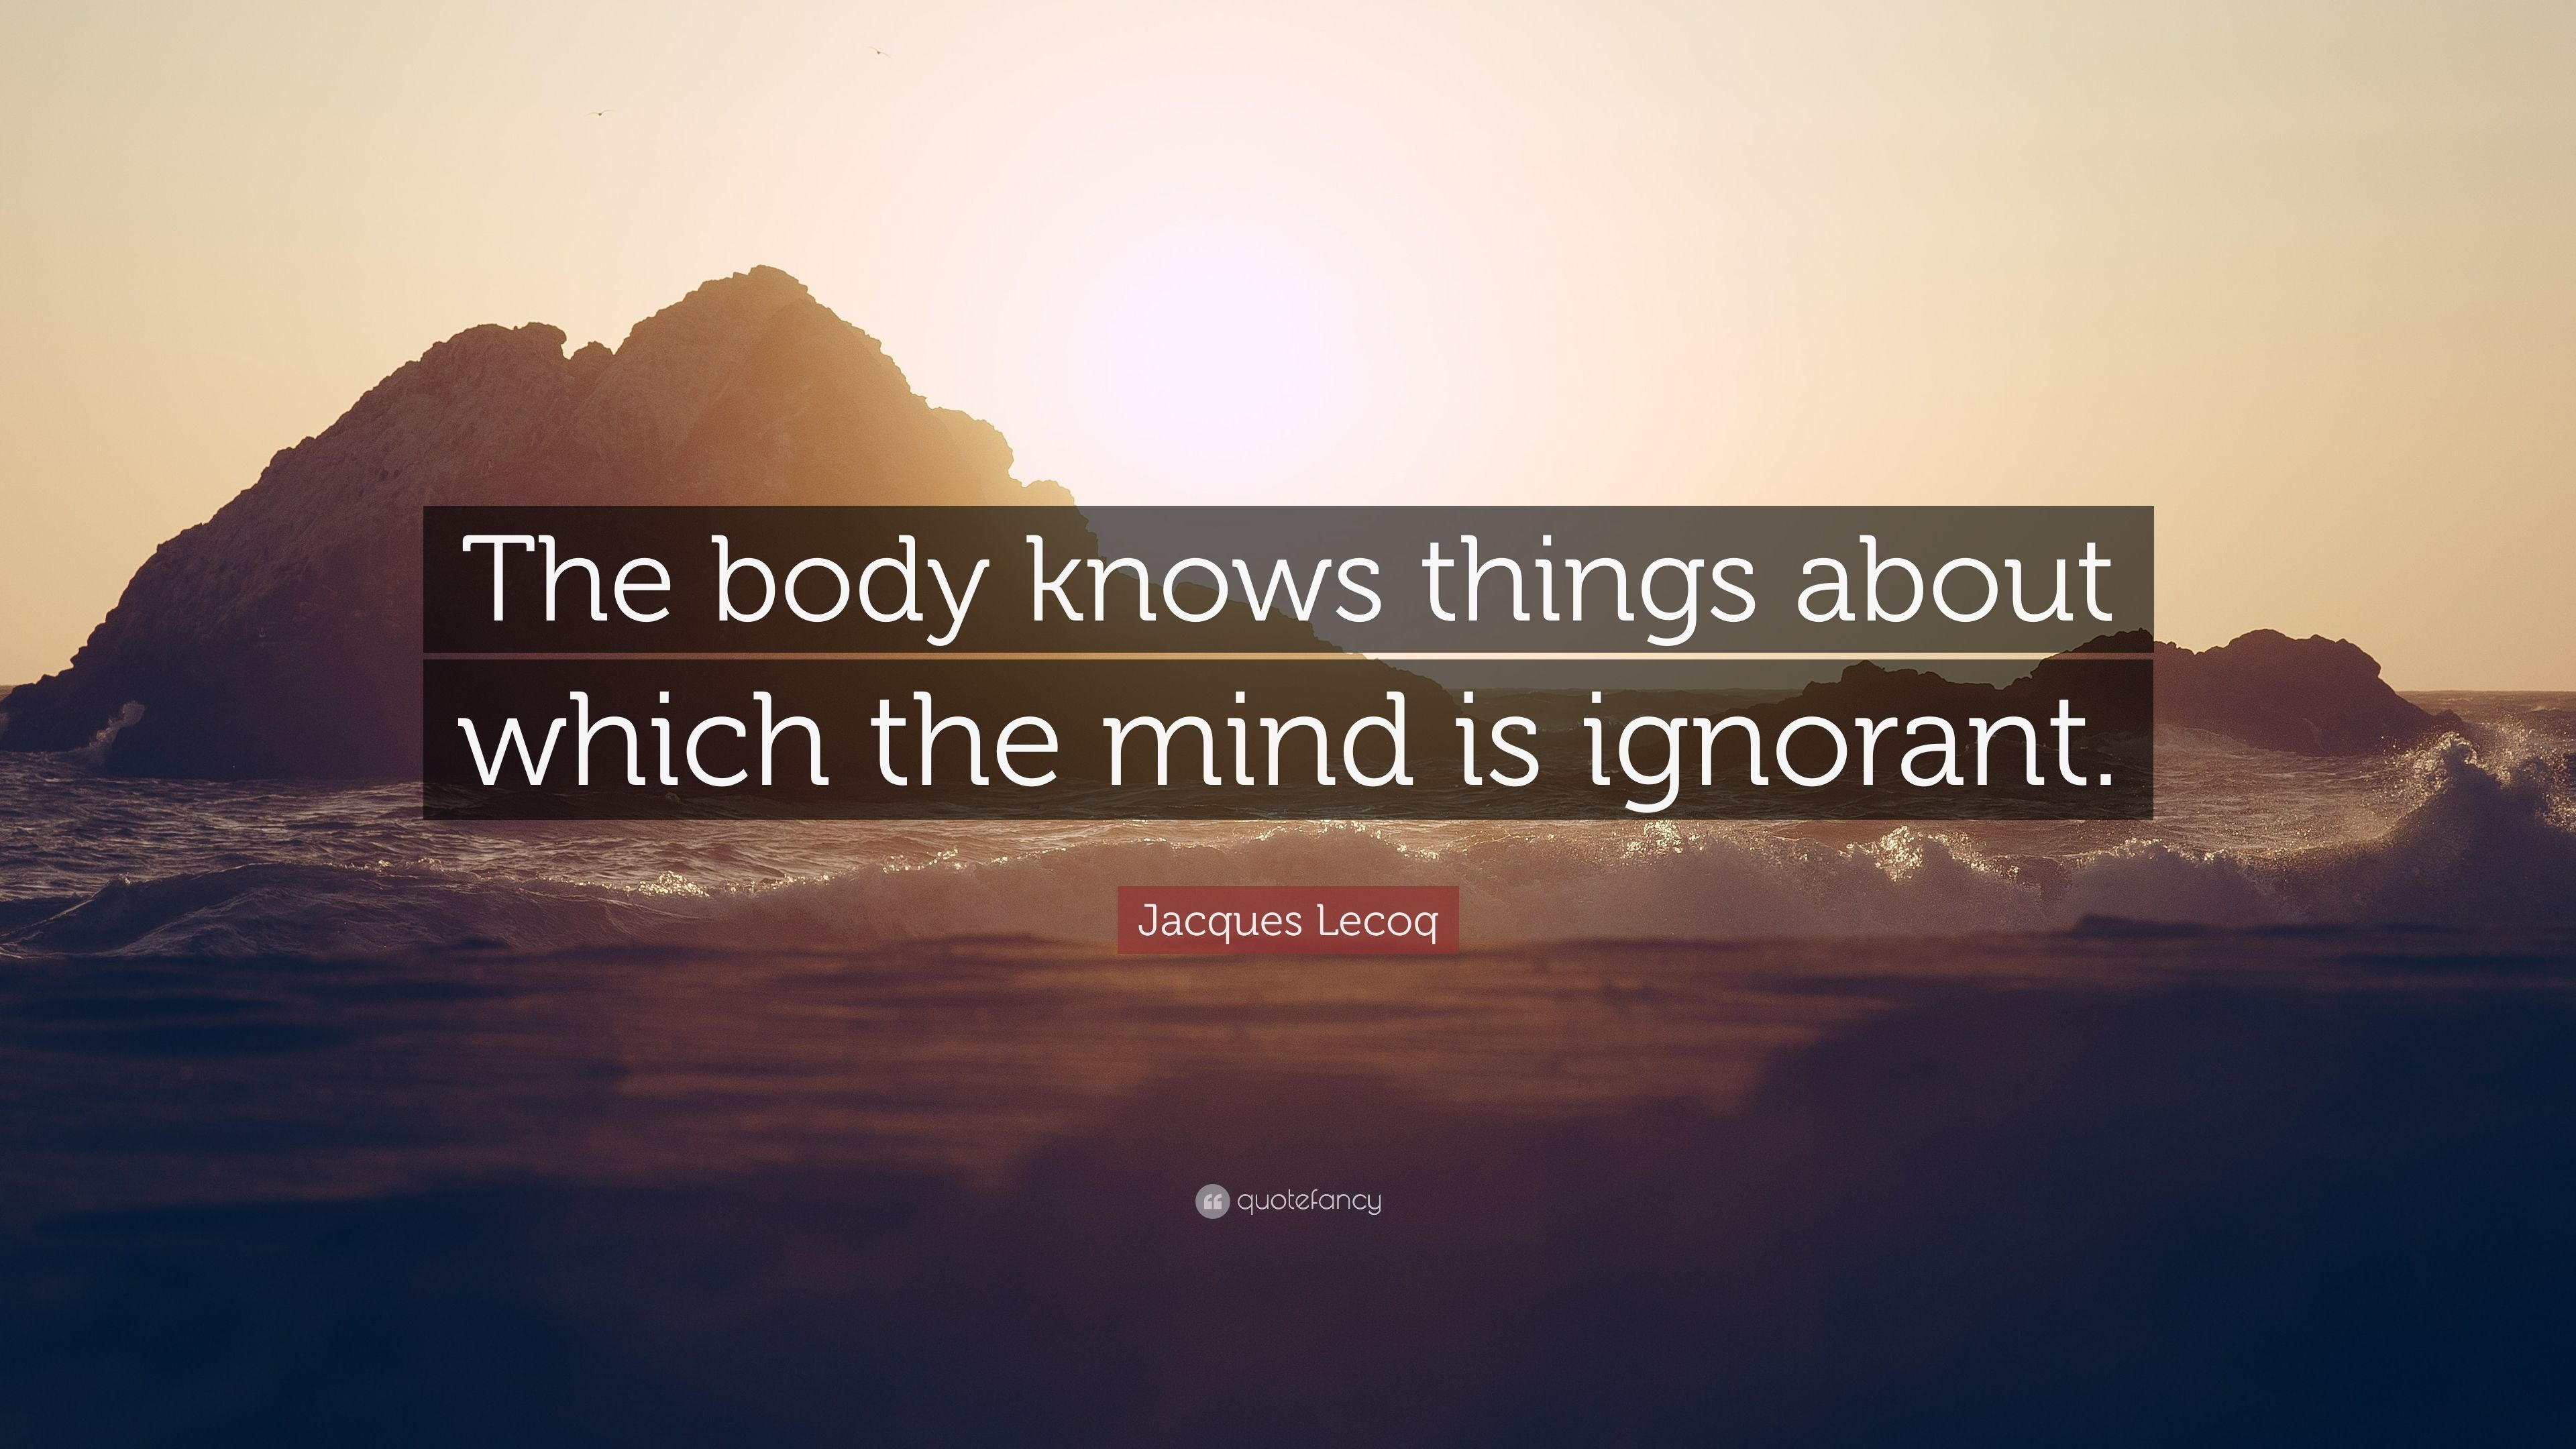 4950825-Jacques-Lecoq-Quote-The-body-knows-things-about-which-the-mind-is